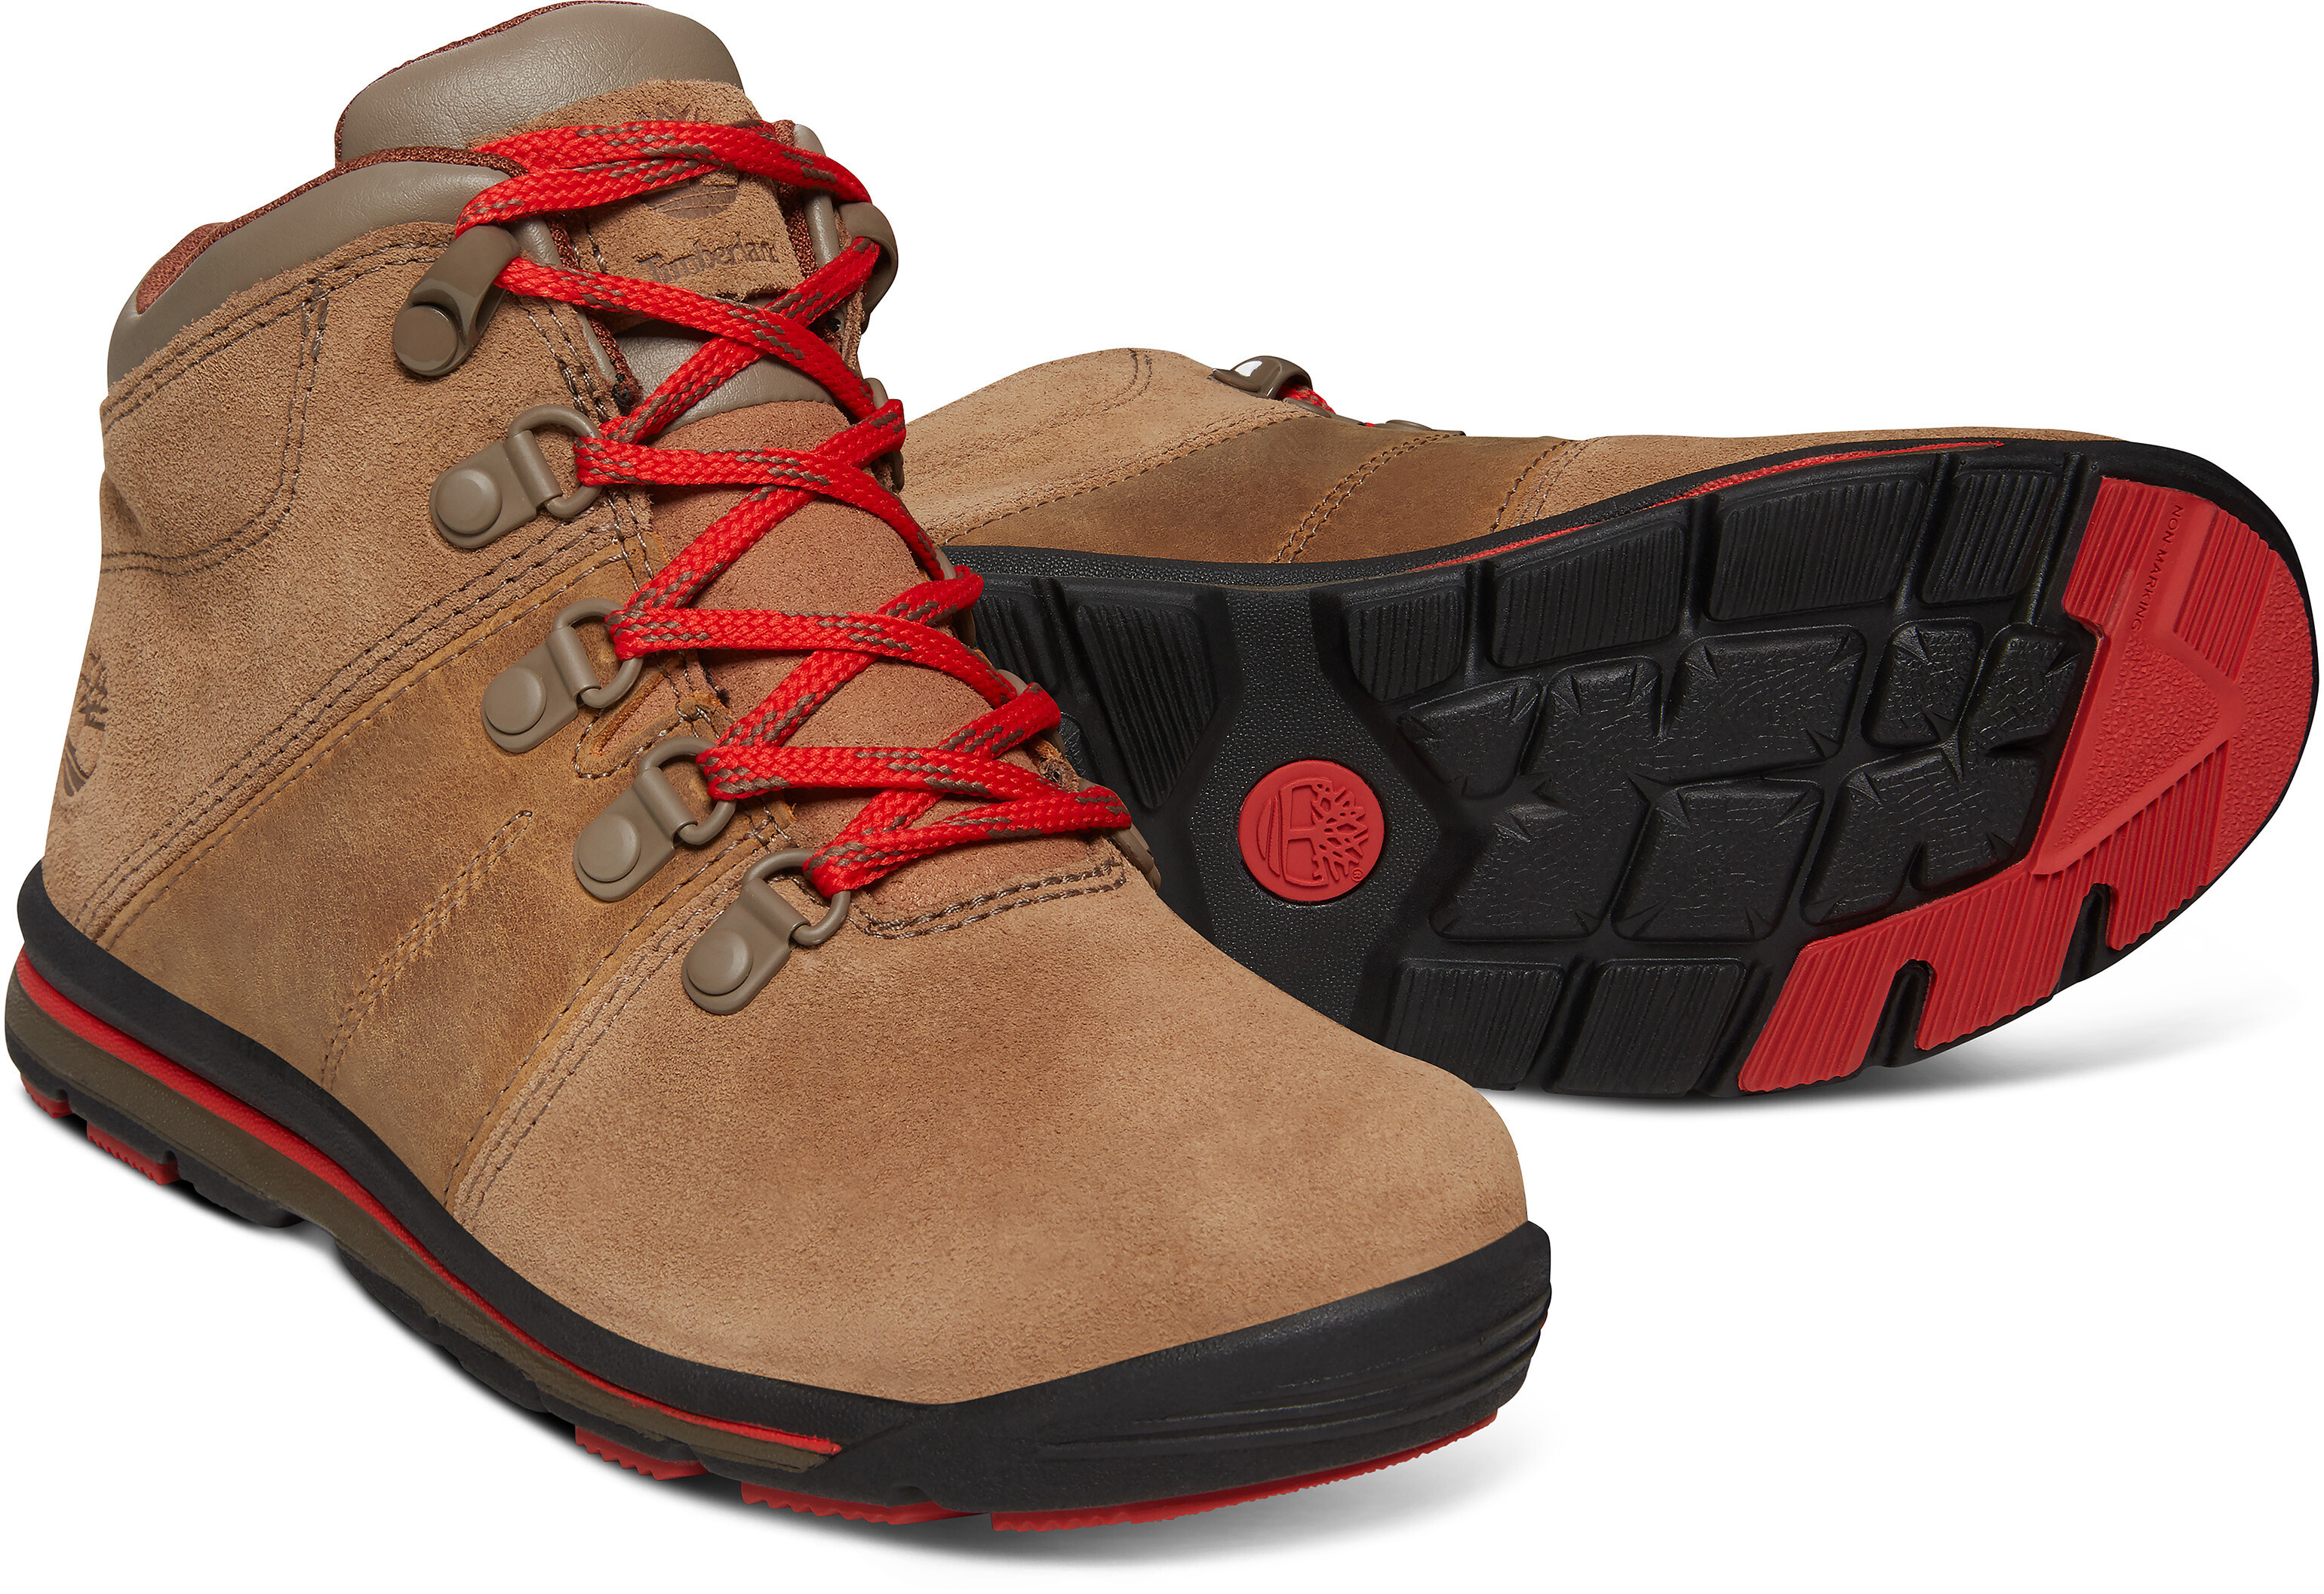 Timberland GT Rally Mid WP - Chaussures Enfant - marron sur CAMPZ ! e7fc851f911